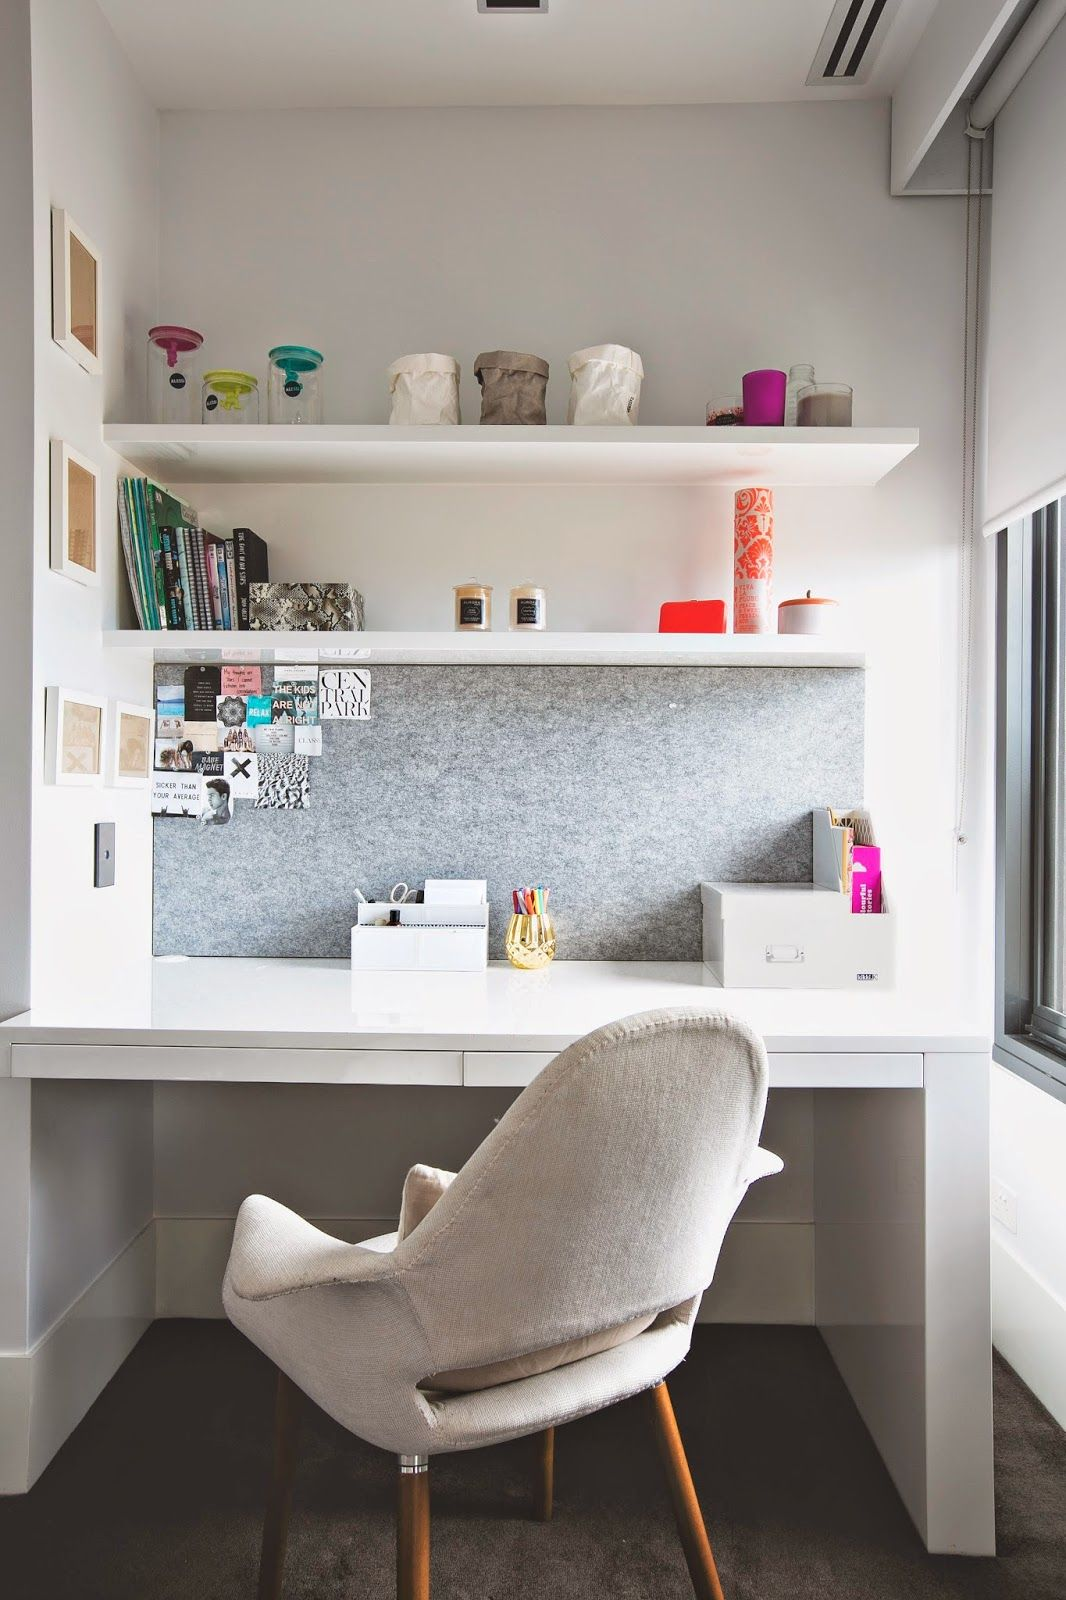 Study Room Storage: We Love Using Storage Boxes To Free Up Clutter On Our Desk